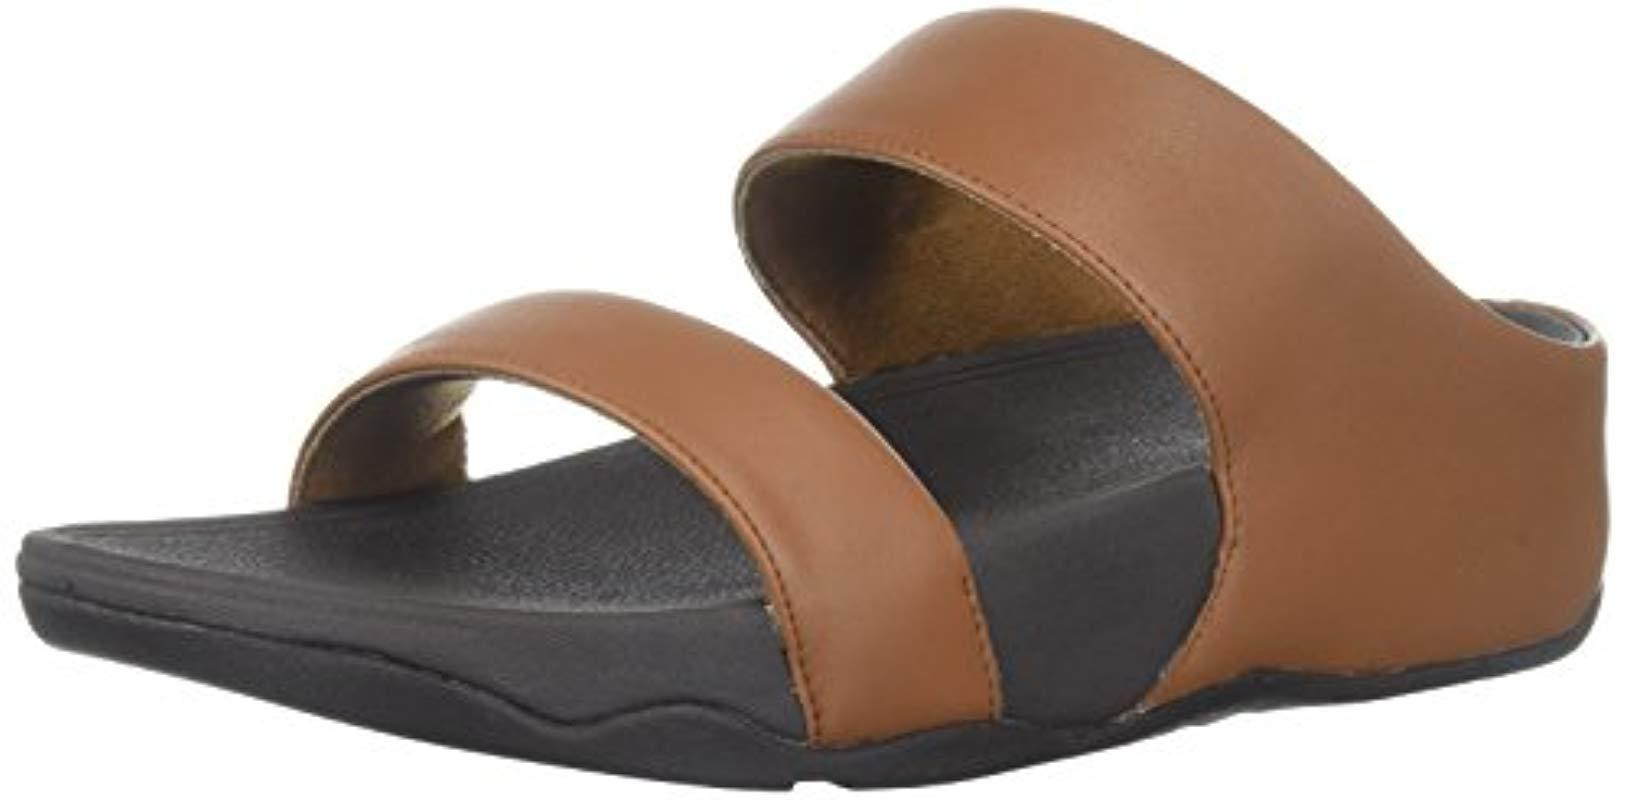 7d35bbd84beebc Lyst - Fitflop Lulu Leather Slide Sandal in Brown